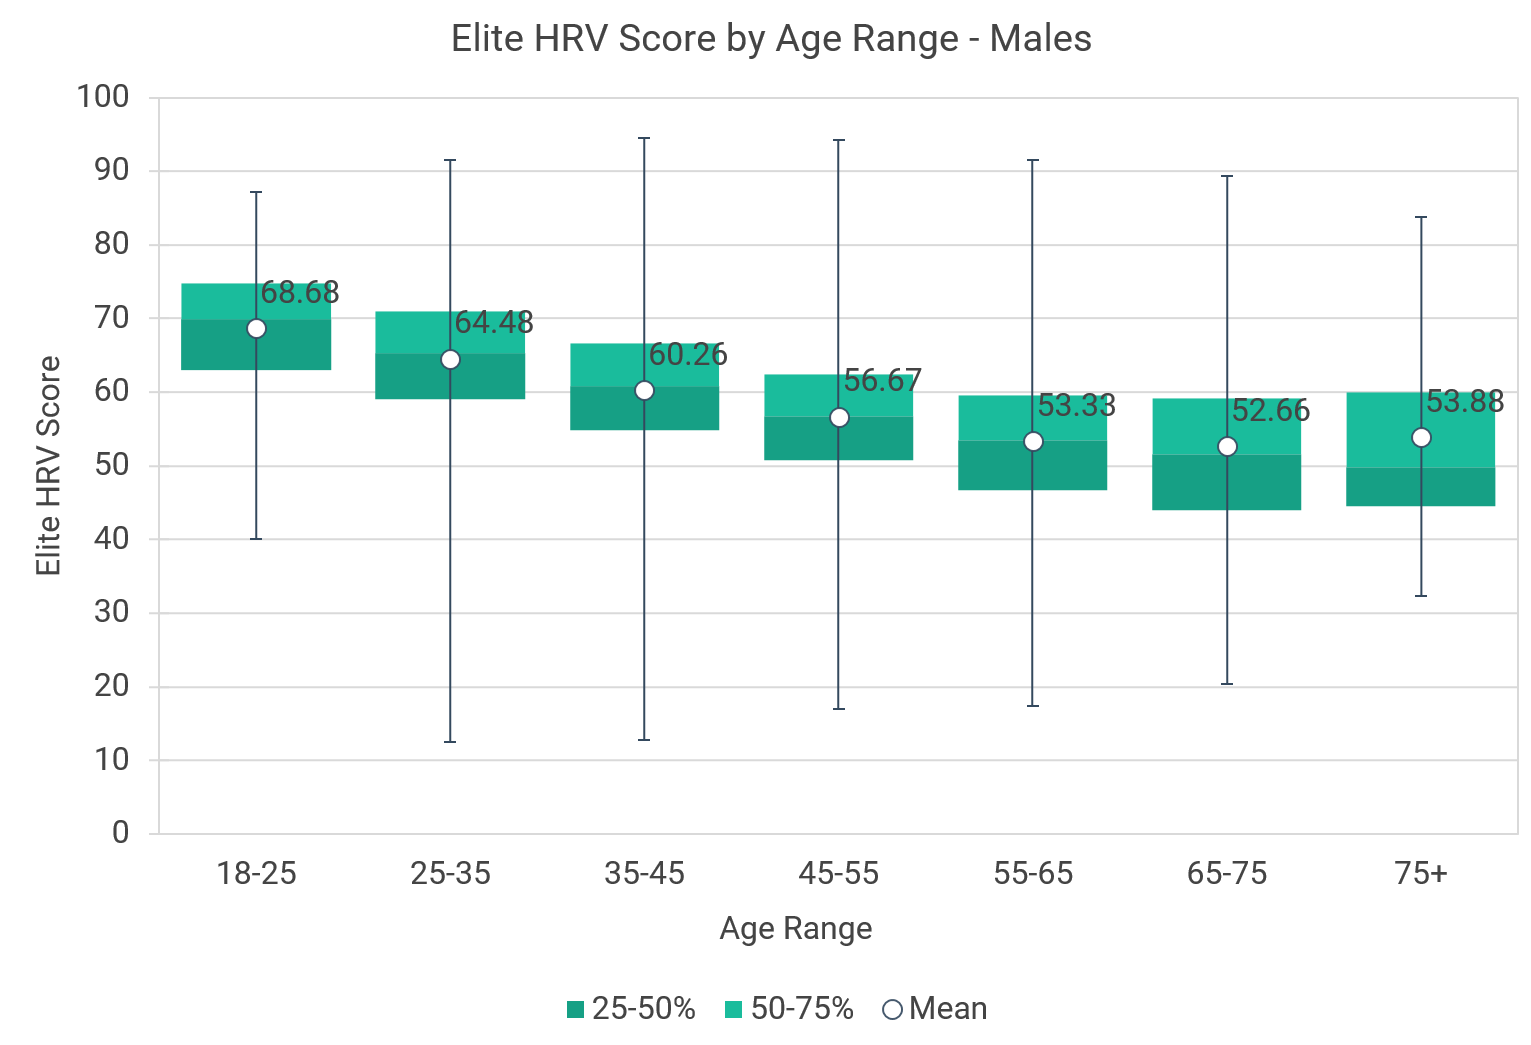 Normative Elite HRV Scores by Age and Gender - Elite HRV